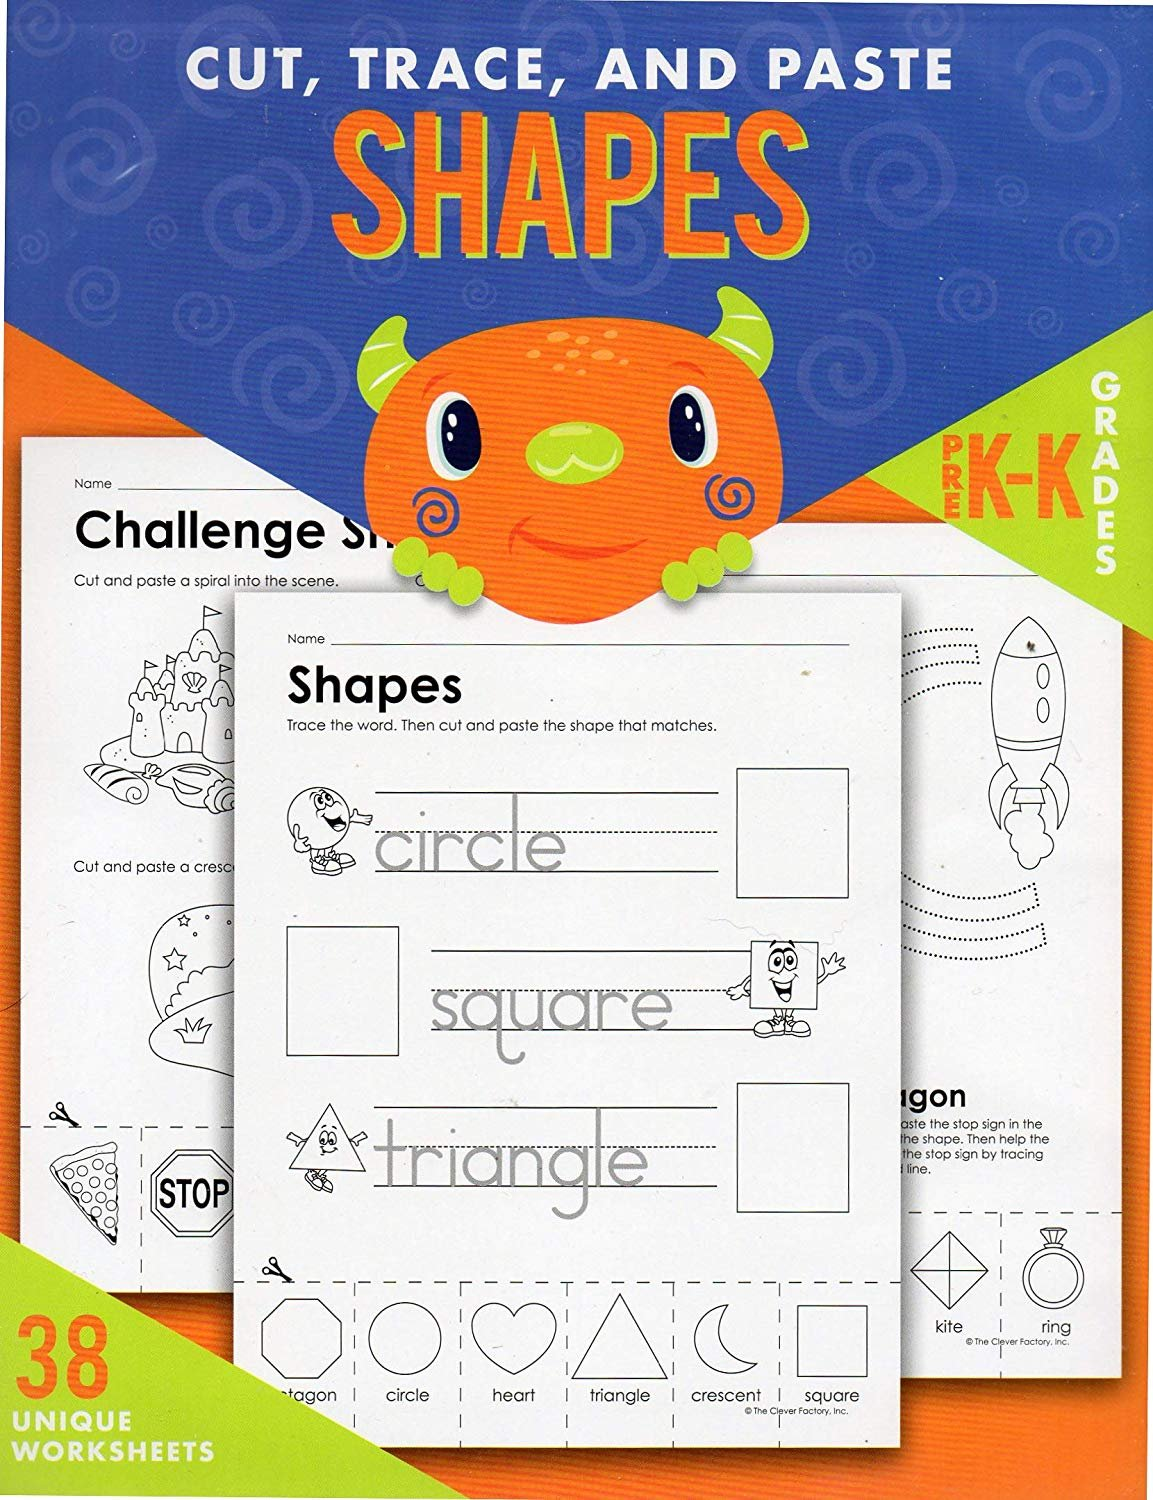 Cut, Trace, and Paste Alphabet & Numbers - Reproducible Educational Workbook - Teacher Approved